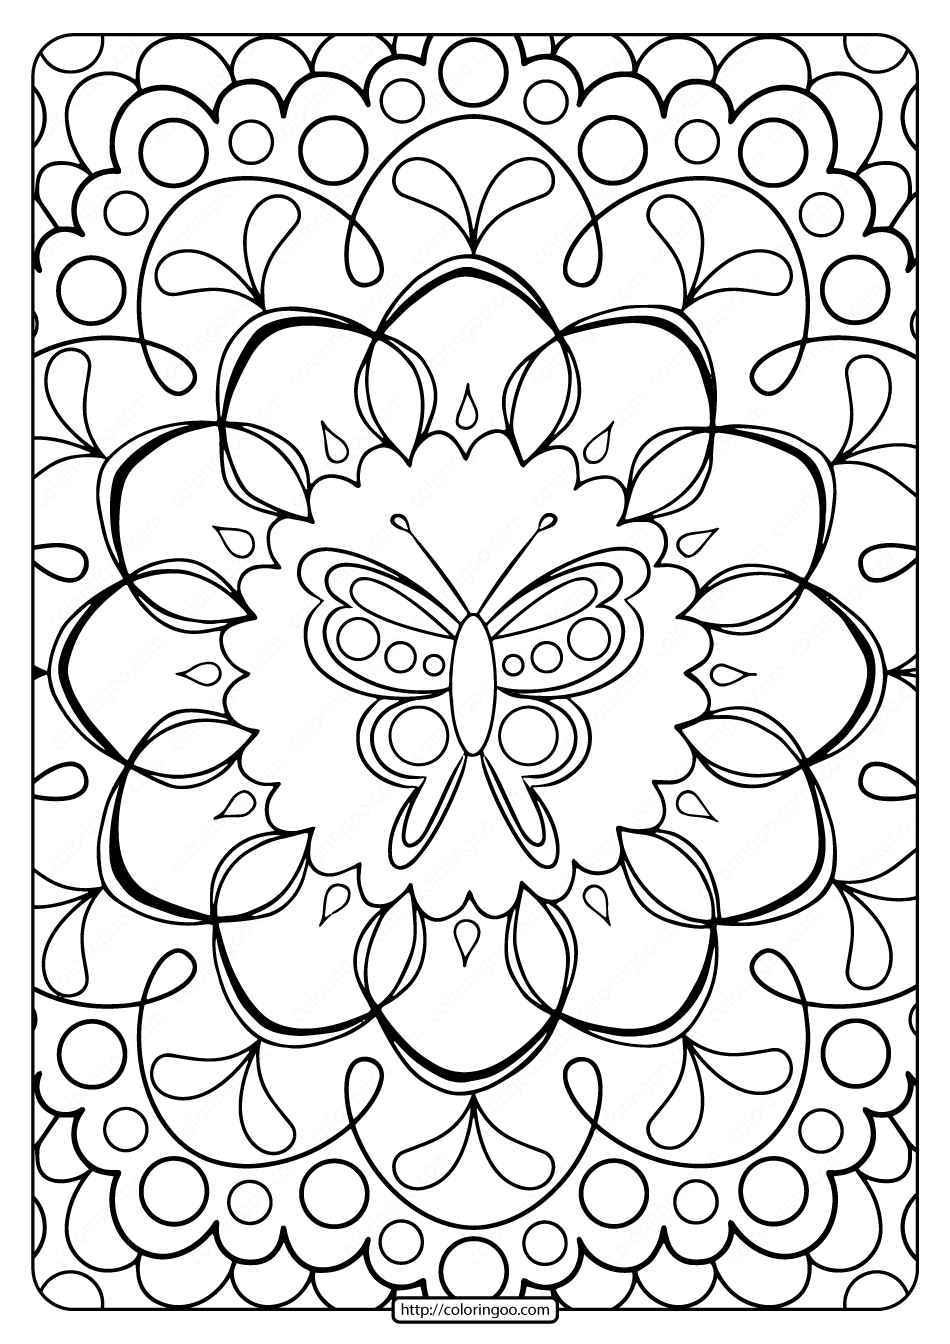 a picture to color free printable butterfly adult coloring pages color a to picture